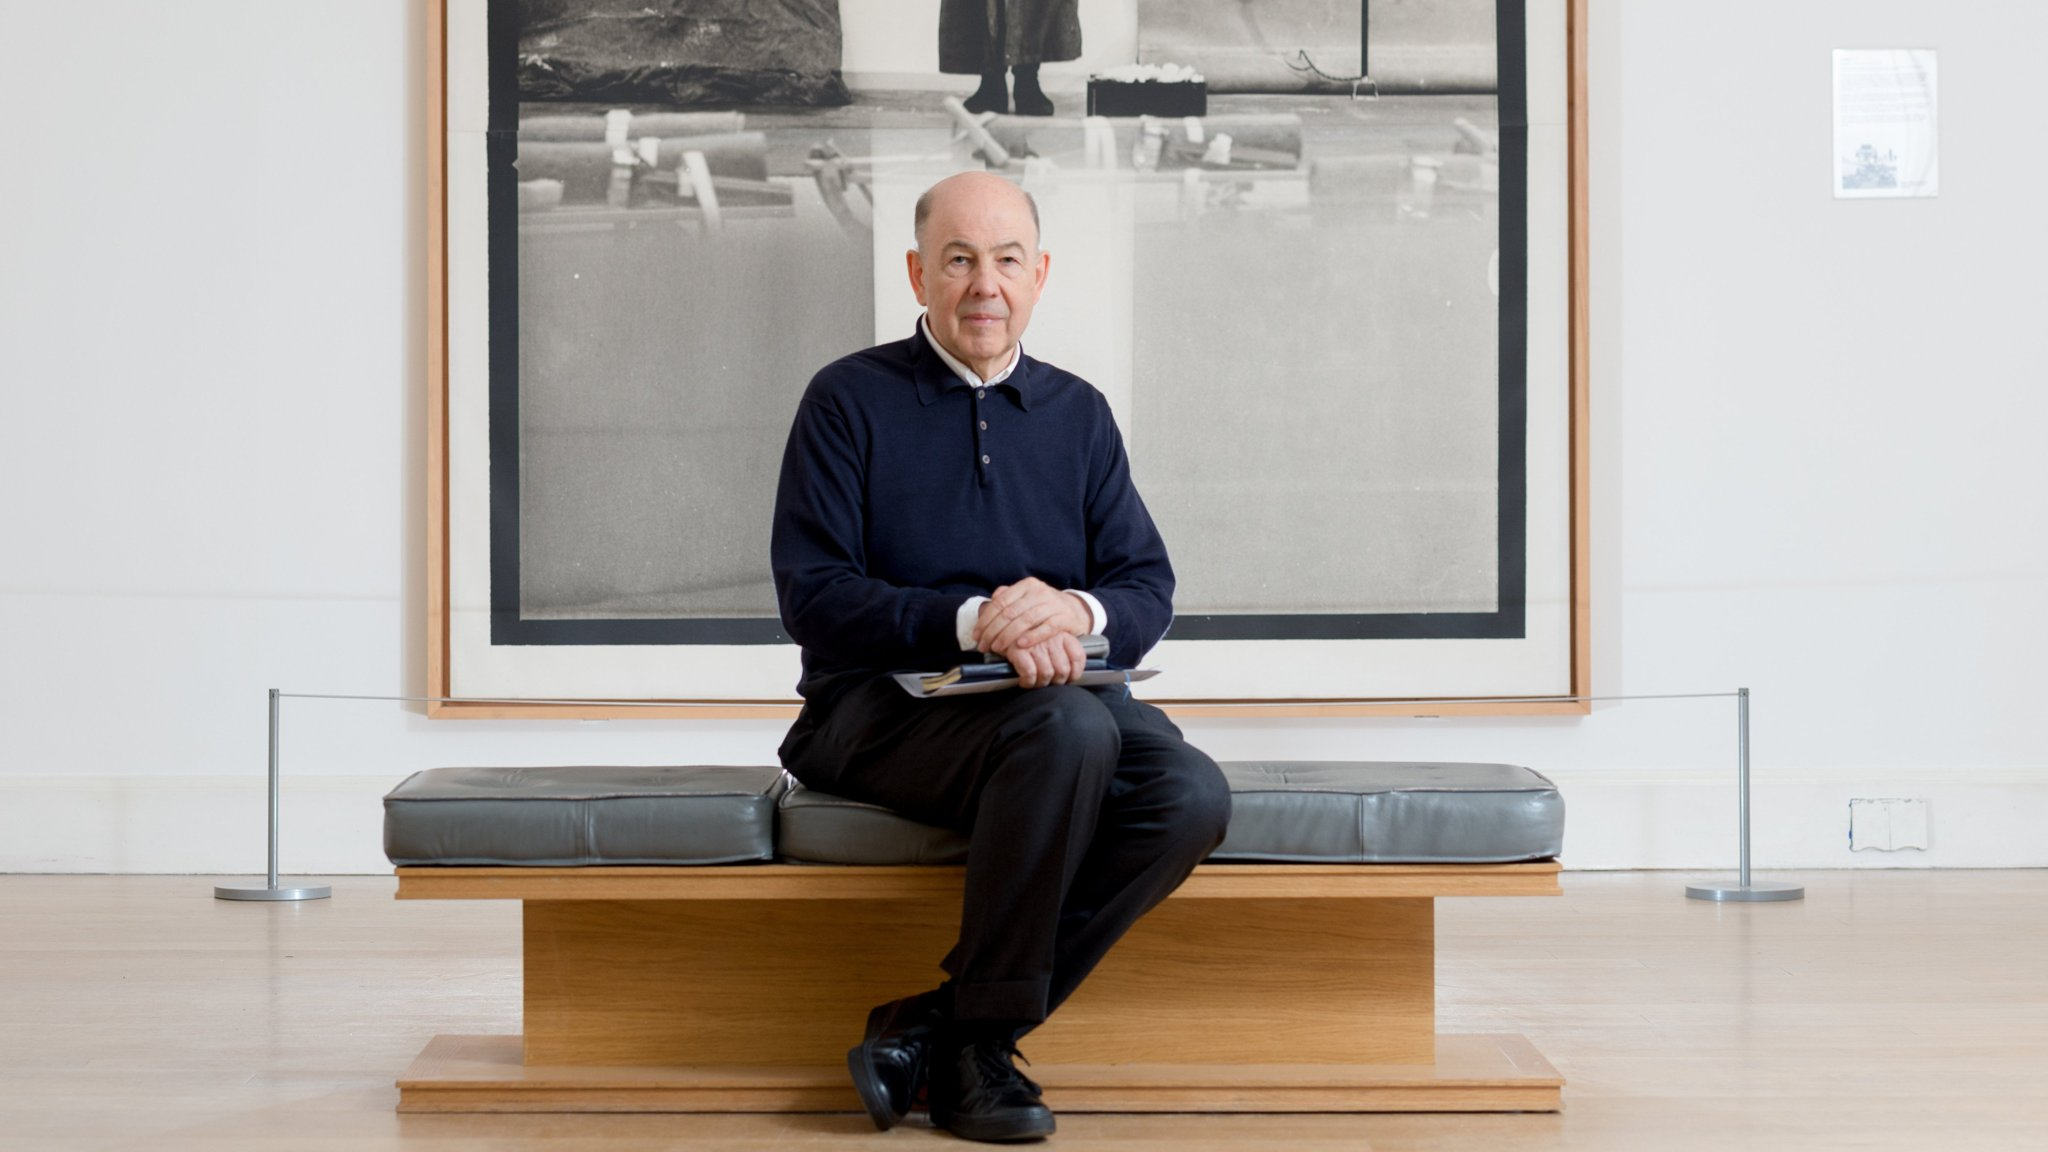 Art dealer accused of sexual harassment